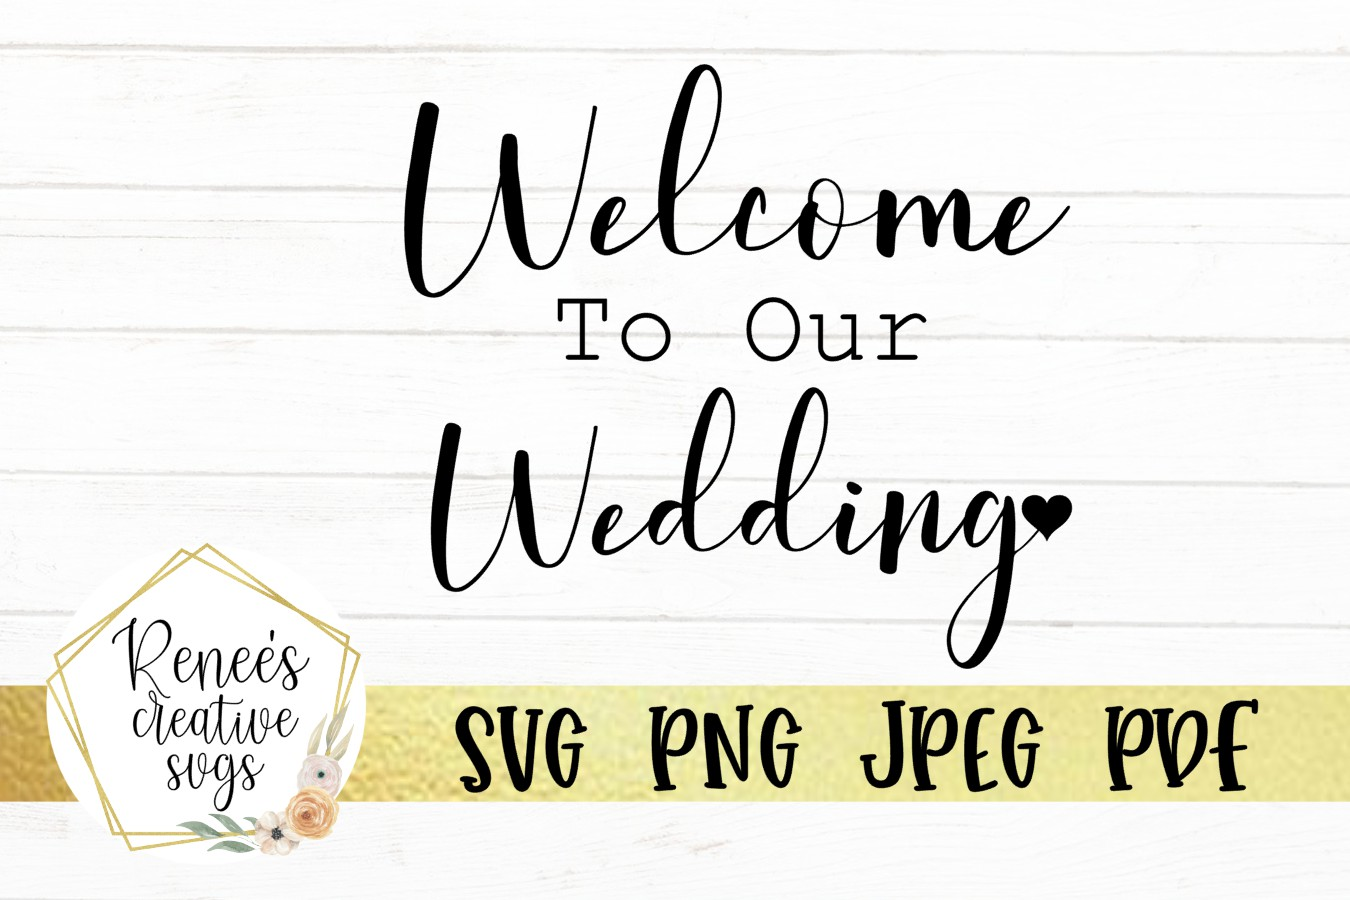 Welcome to our wedding |Wedding Quote Saying |SVG Cut File example image 2